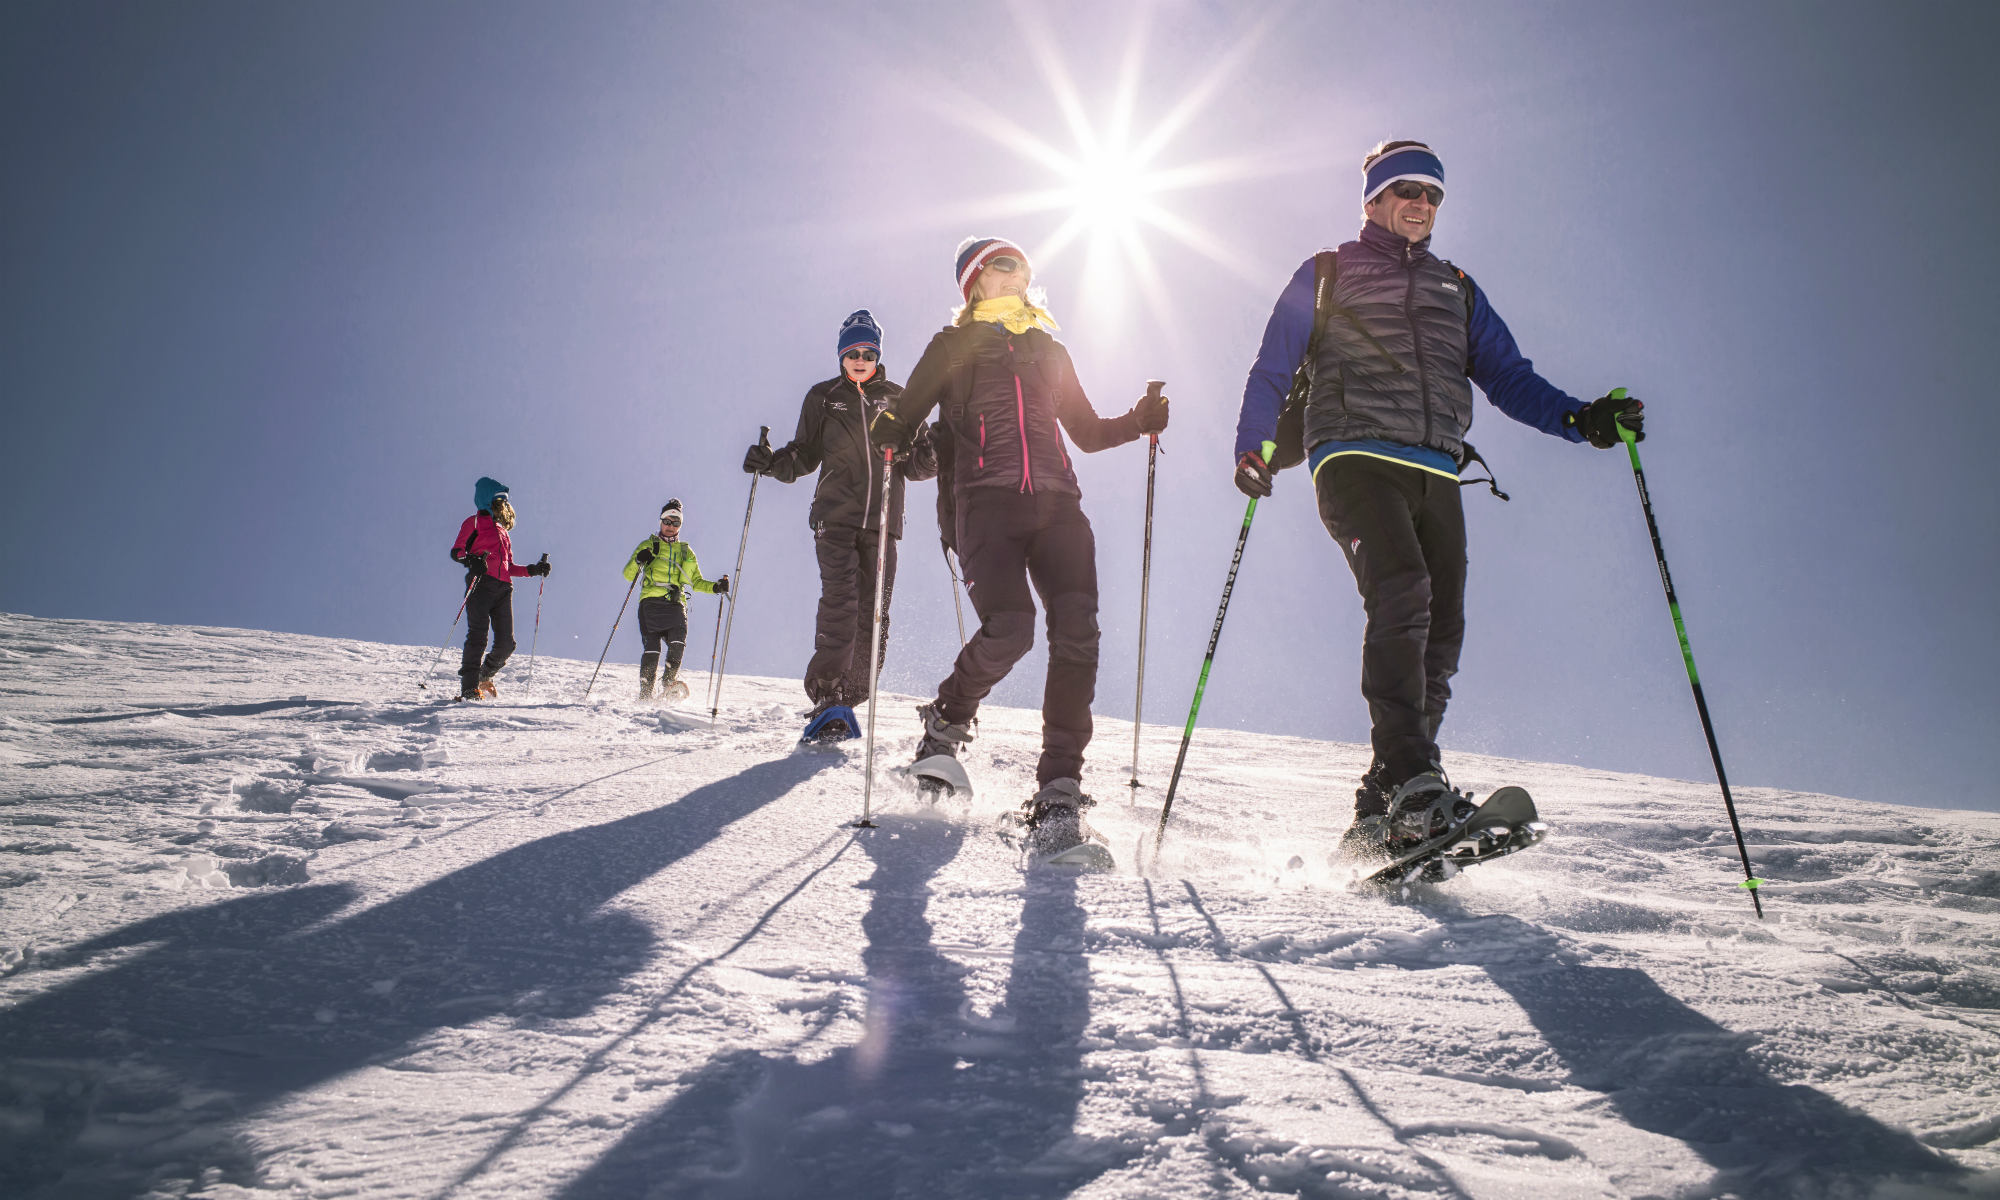 5 people during a snowshoeing trip in the sunshine.